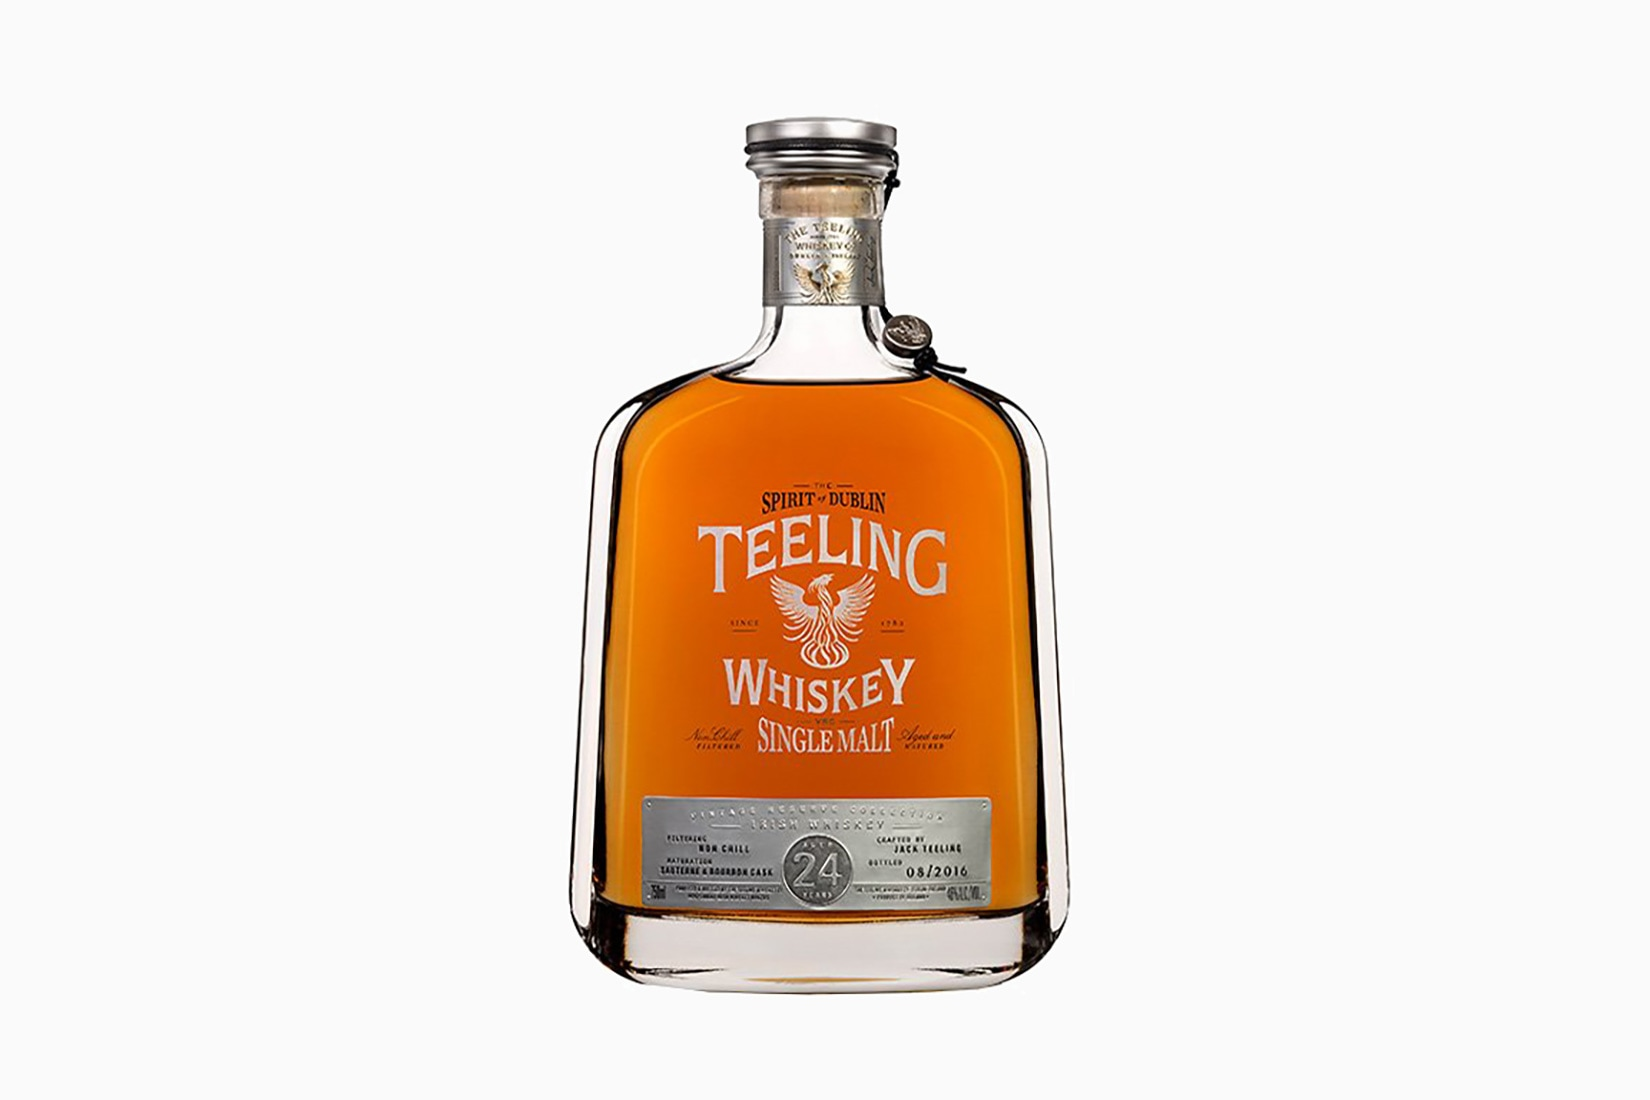 best whisky brands irish whiskey Teeling - Luxe Digital